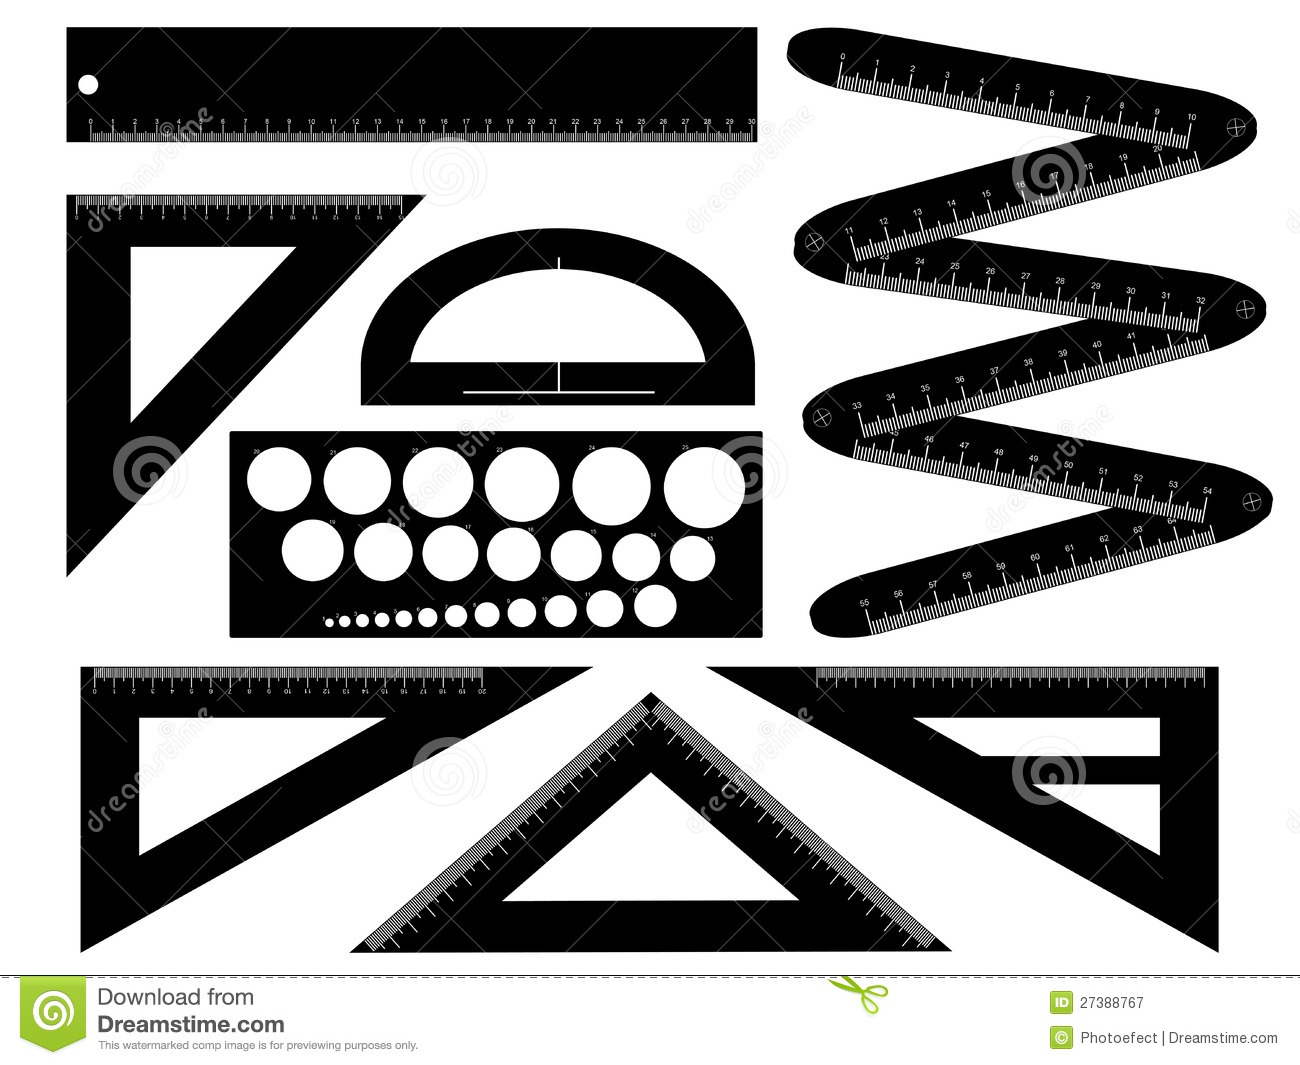 Tools Used In Drafting Equipment Or Instrument : Technical drawing equipment stock vector image